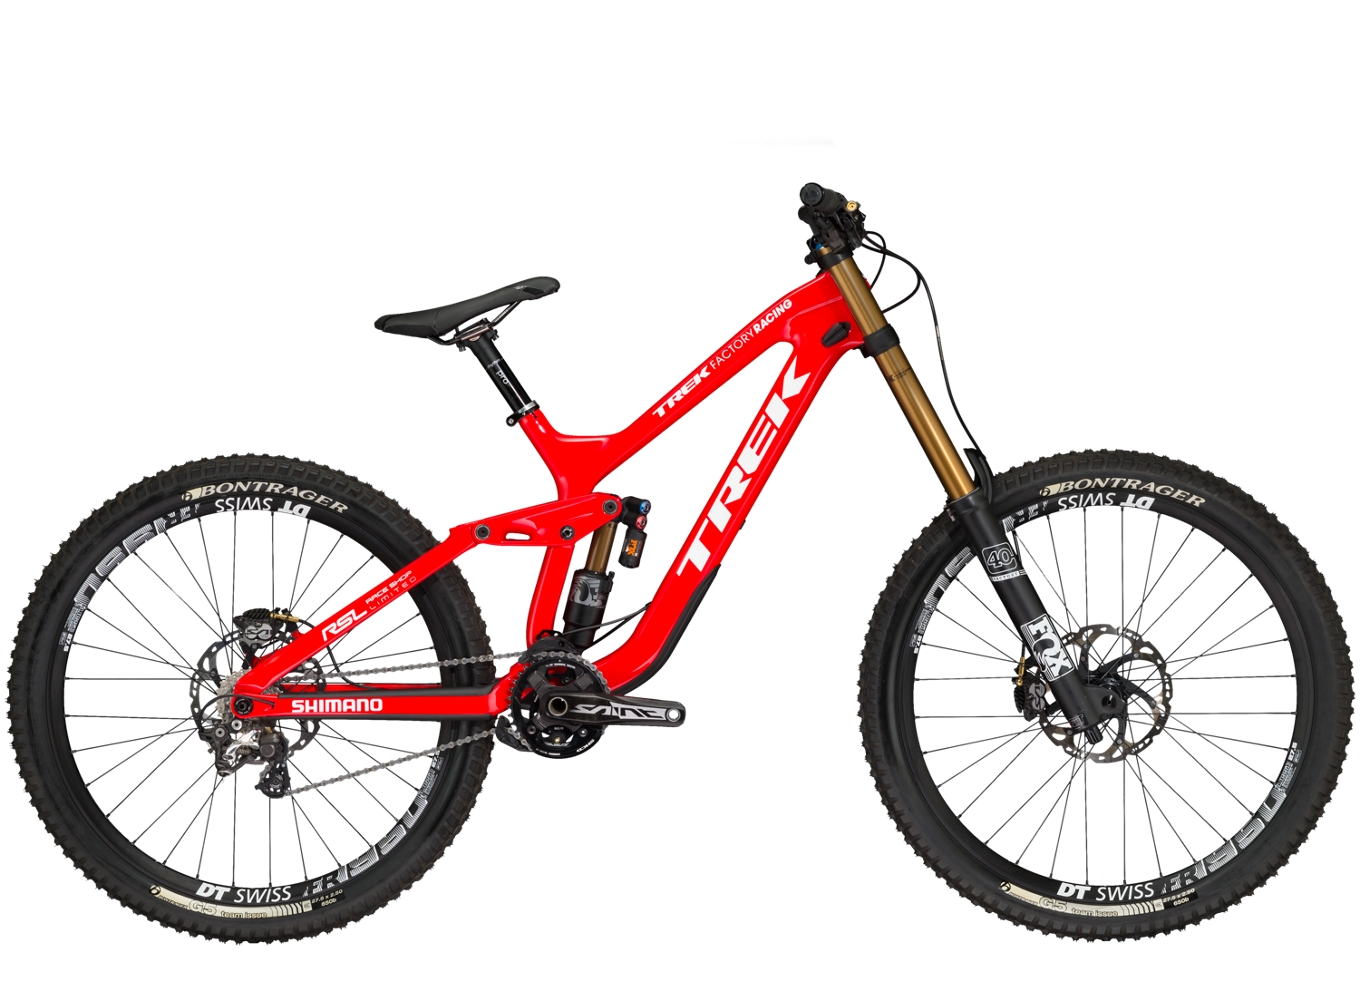 New Trek Mountain Bikes 2017 - Bicycling and the Best Bike ...